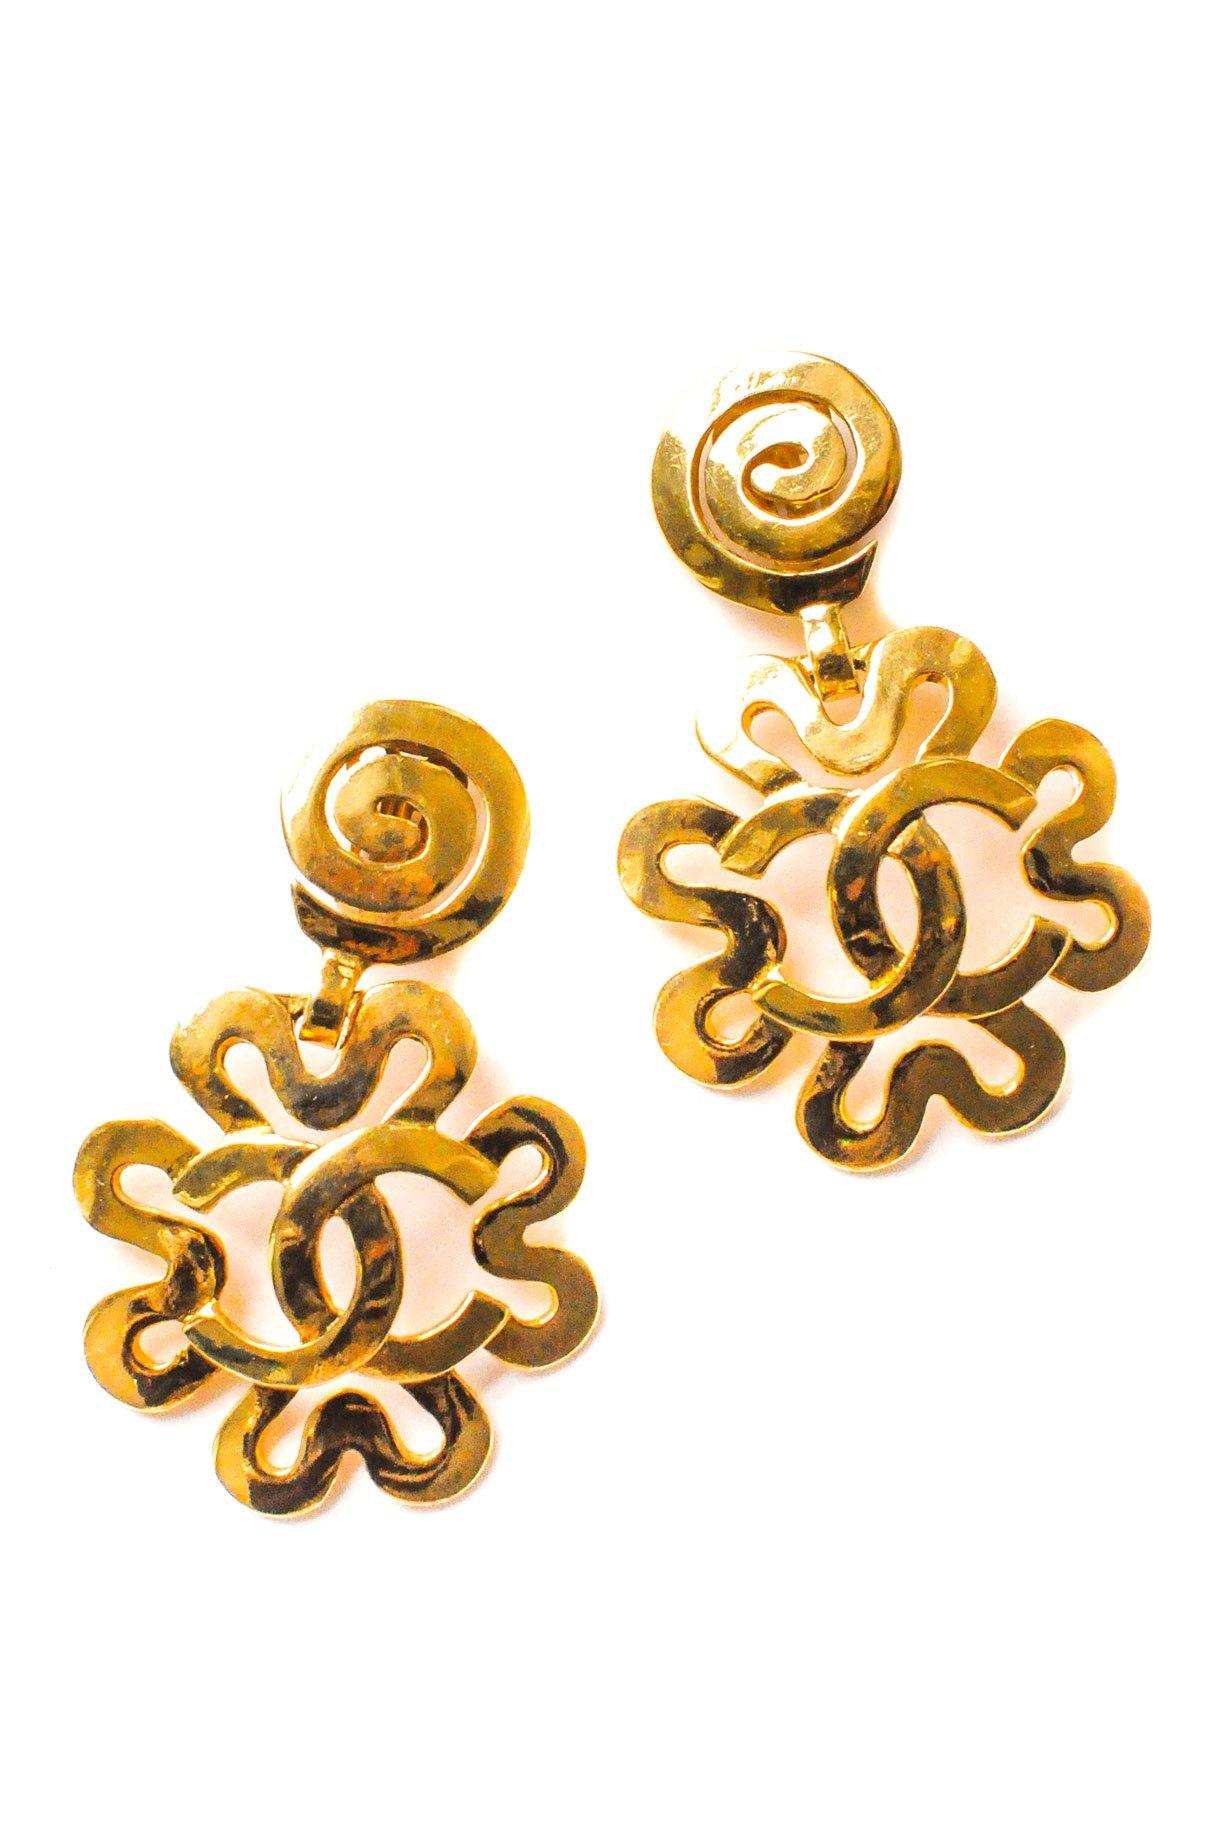 Chanel Statement Swirl Clip-on Earrings